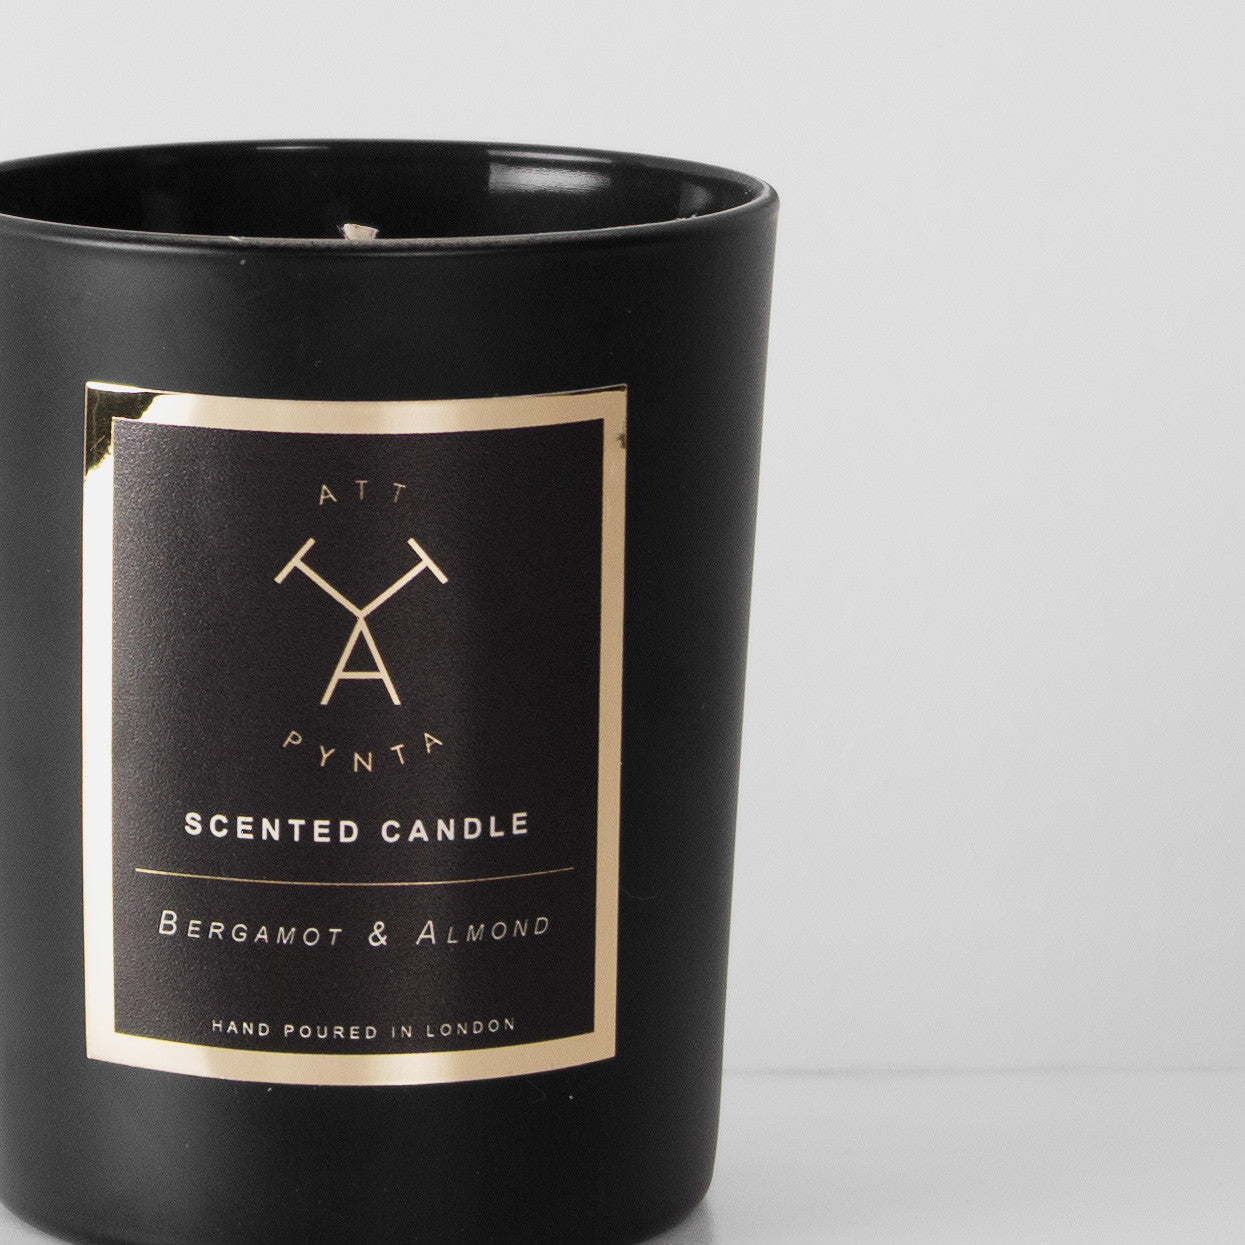 Bergamot & Almond scented candle